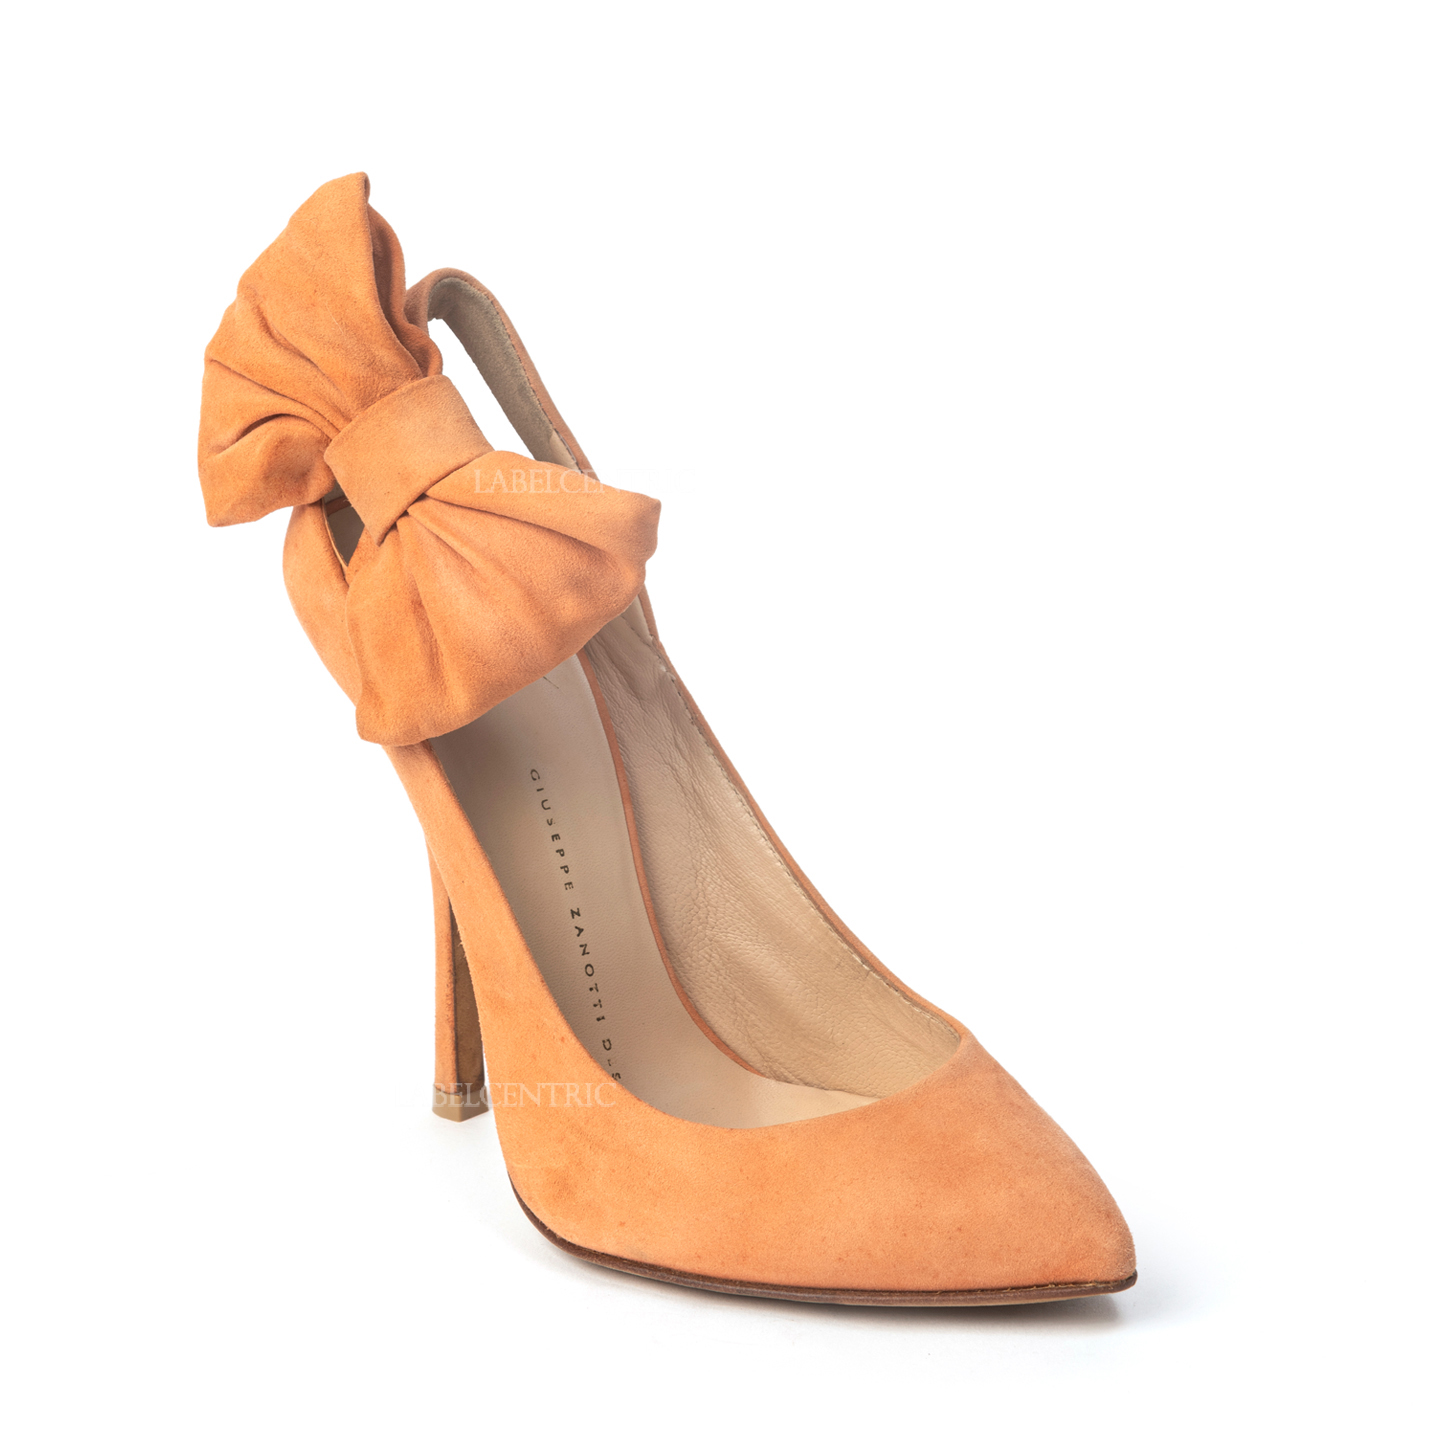 Giuseppe Zanotti Coral Suede Leather Pointed Toe Pump With Side Bow